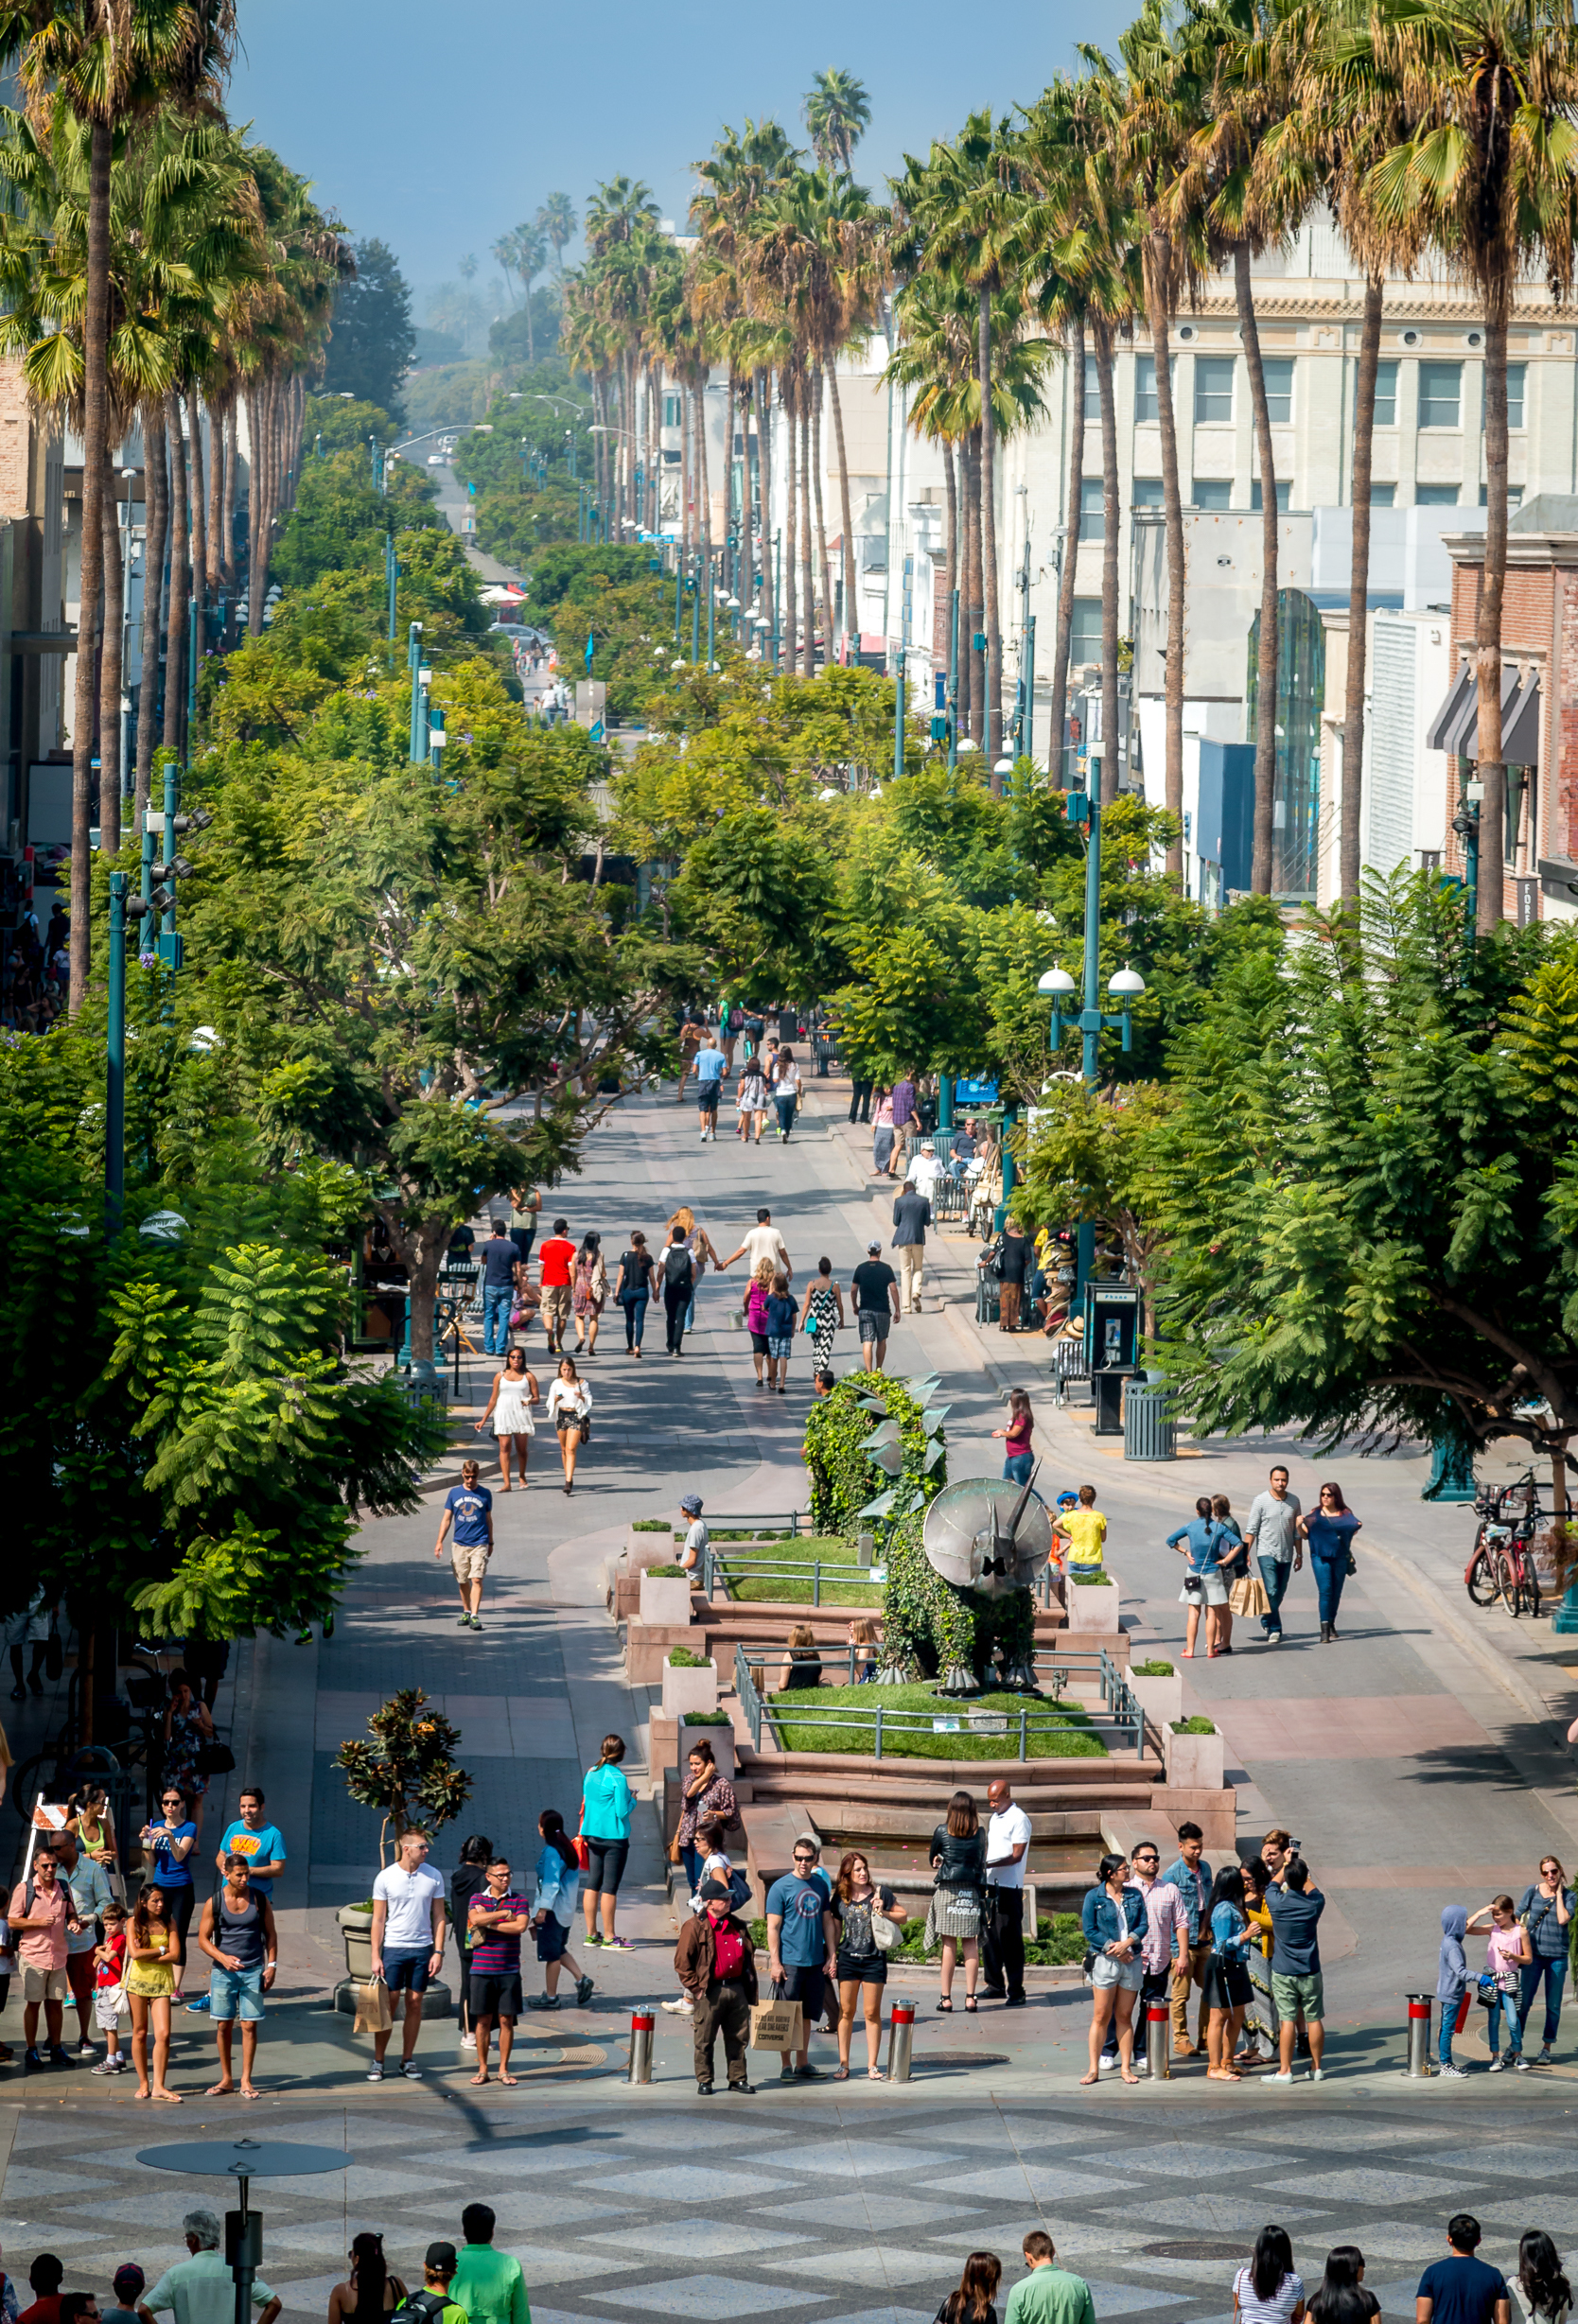 Aerial view of a wide, tree-lined street where lots of people are walking.